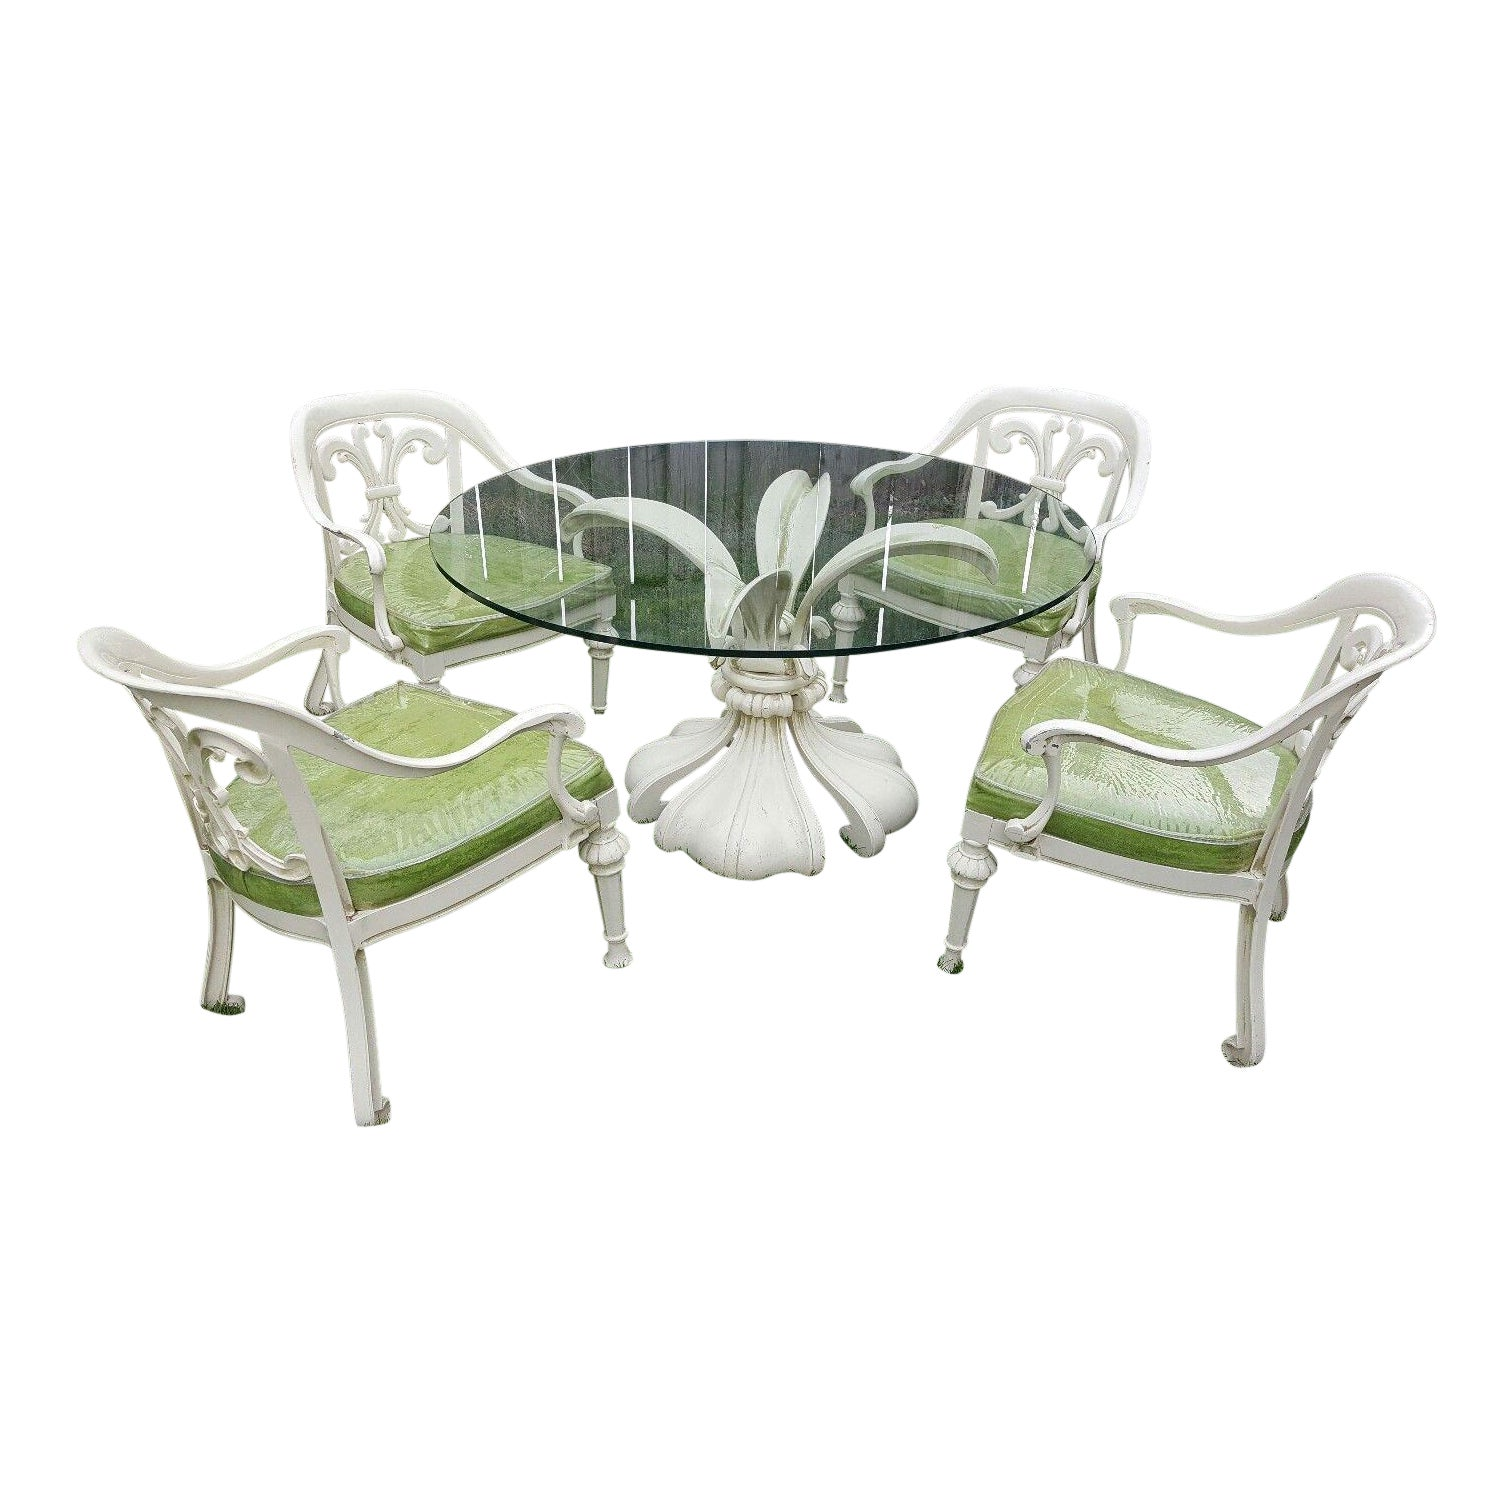 Kessler Biomorphic Aluminum Lily Patio Table Amp Chairs Set